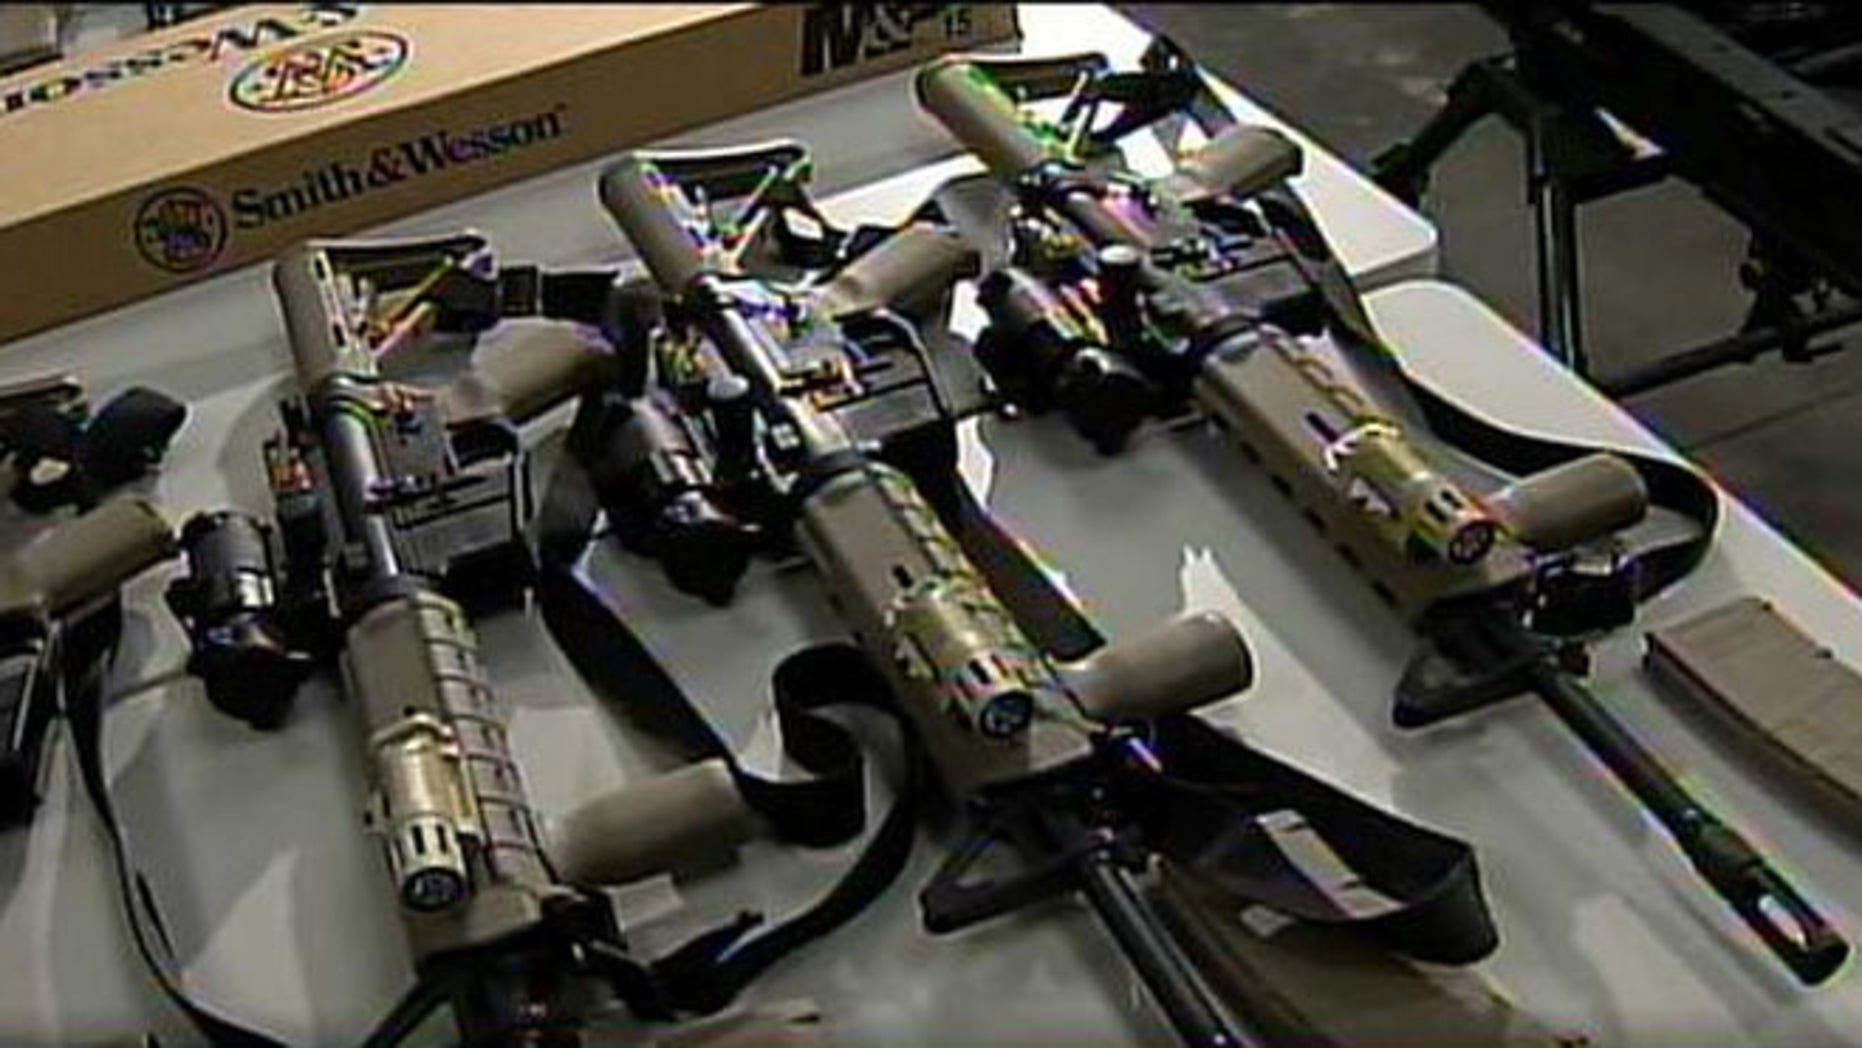 AR-15 style rifles purchased by the Maricopa County Sheriff's Office.